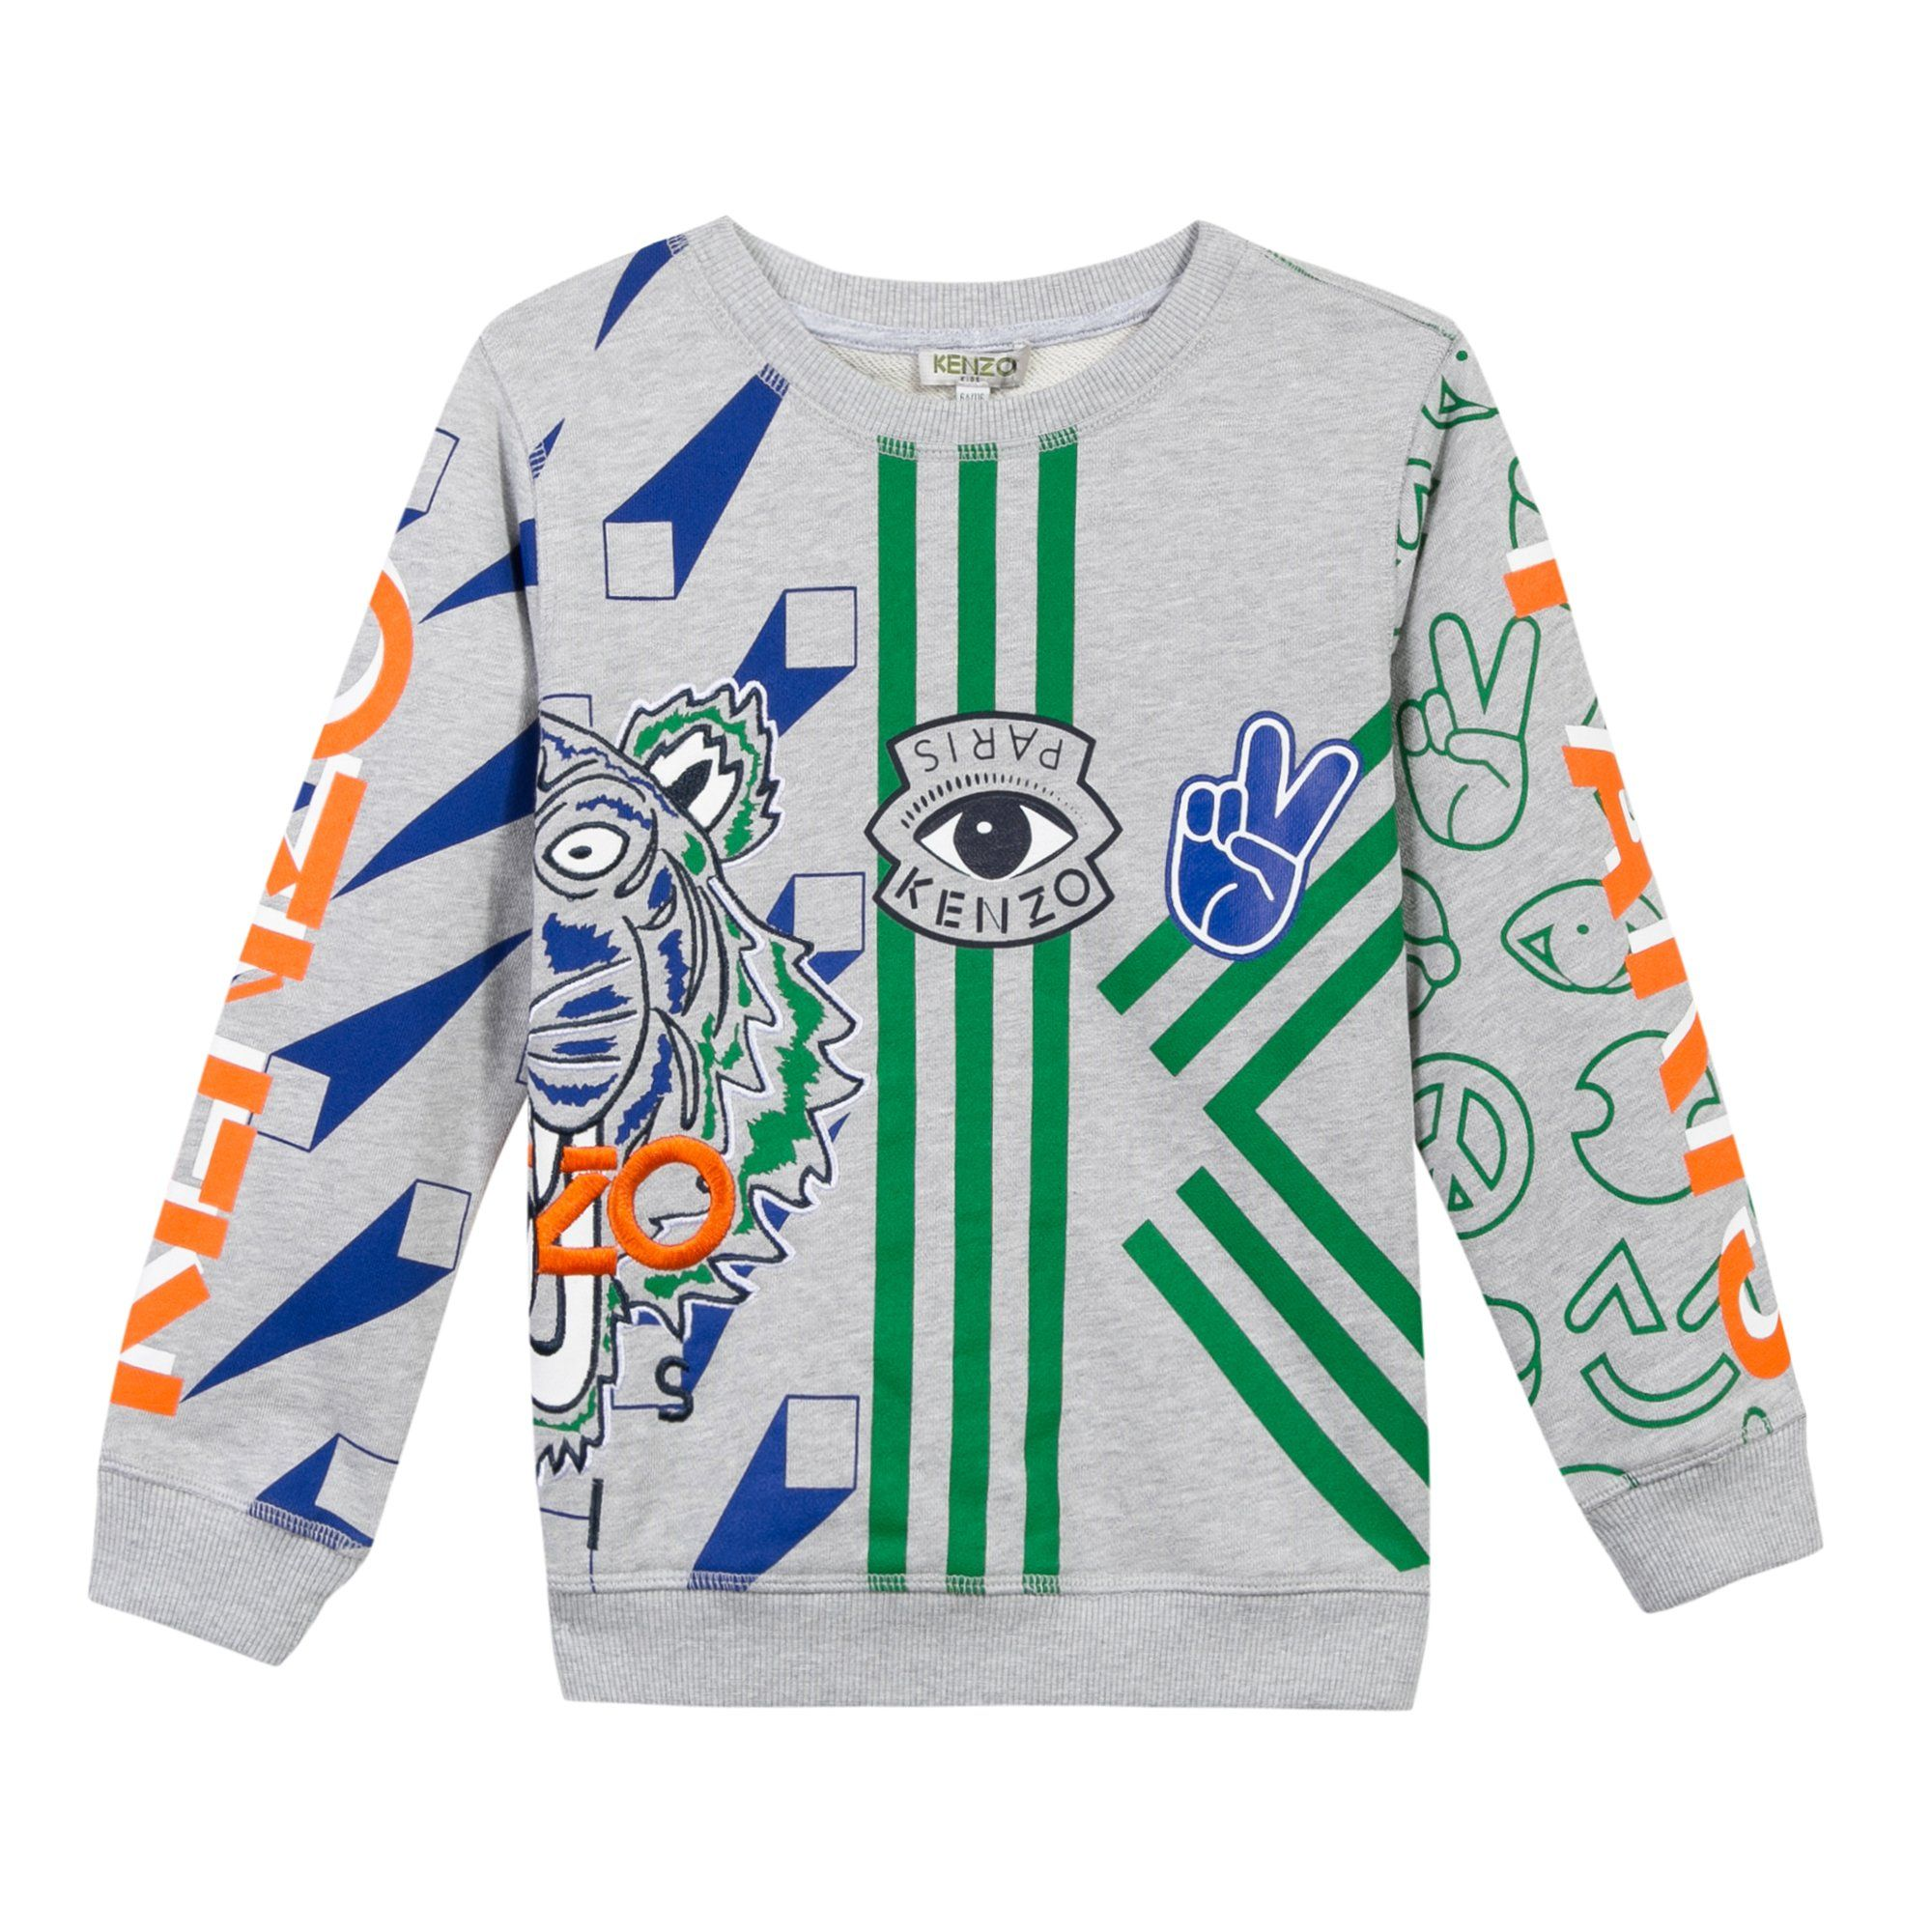 34e7afd11a402 Long sleeve sweatshirt with Tiger Friends and Logos printed and embroidered  on front and back. Tiger head and KENZO Paris logo, embroidered over the  pint.